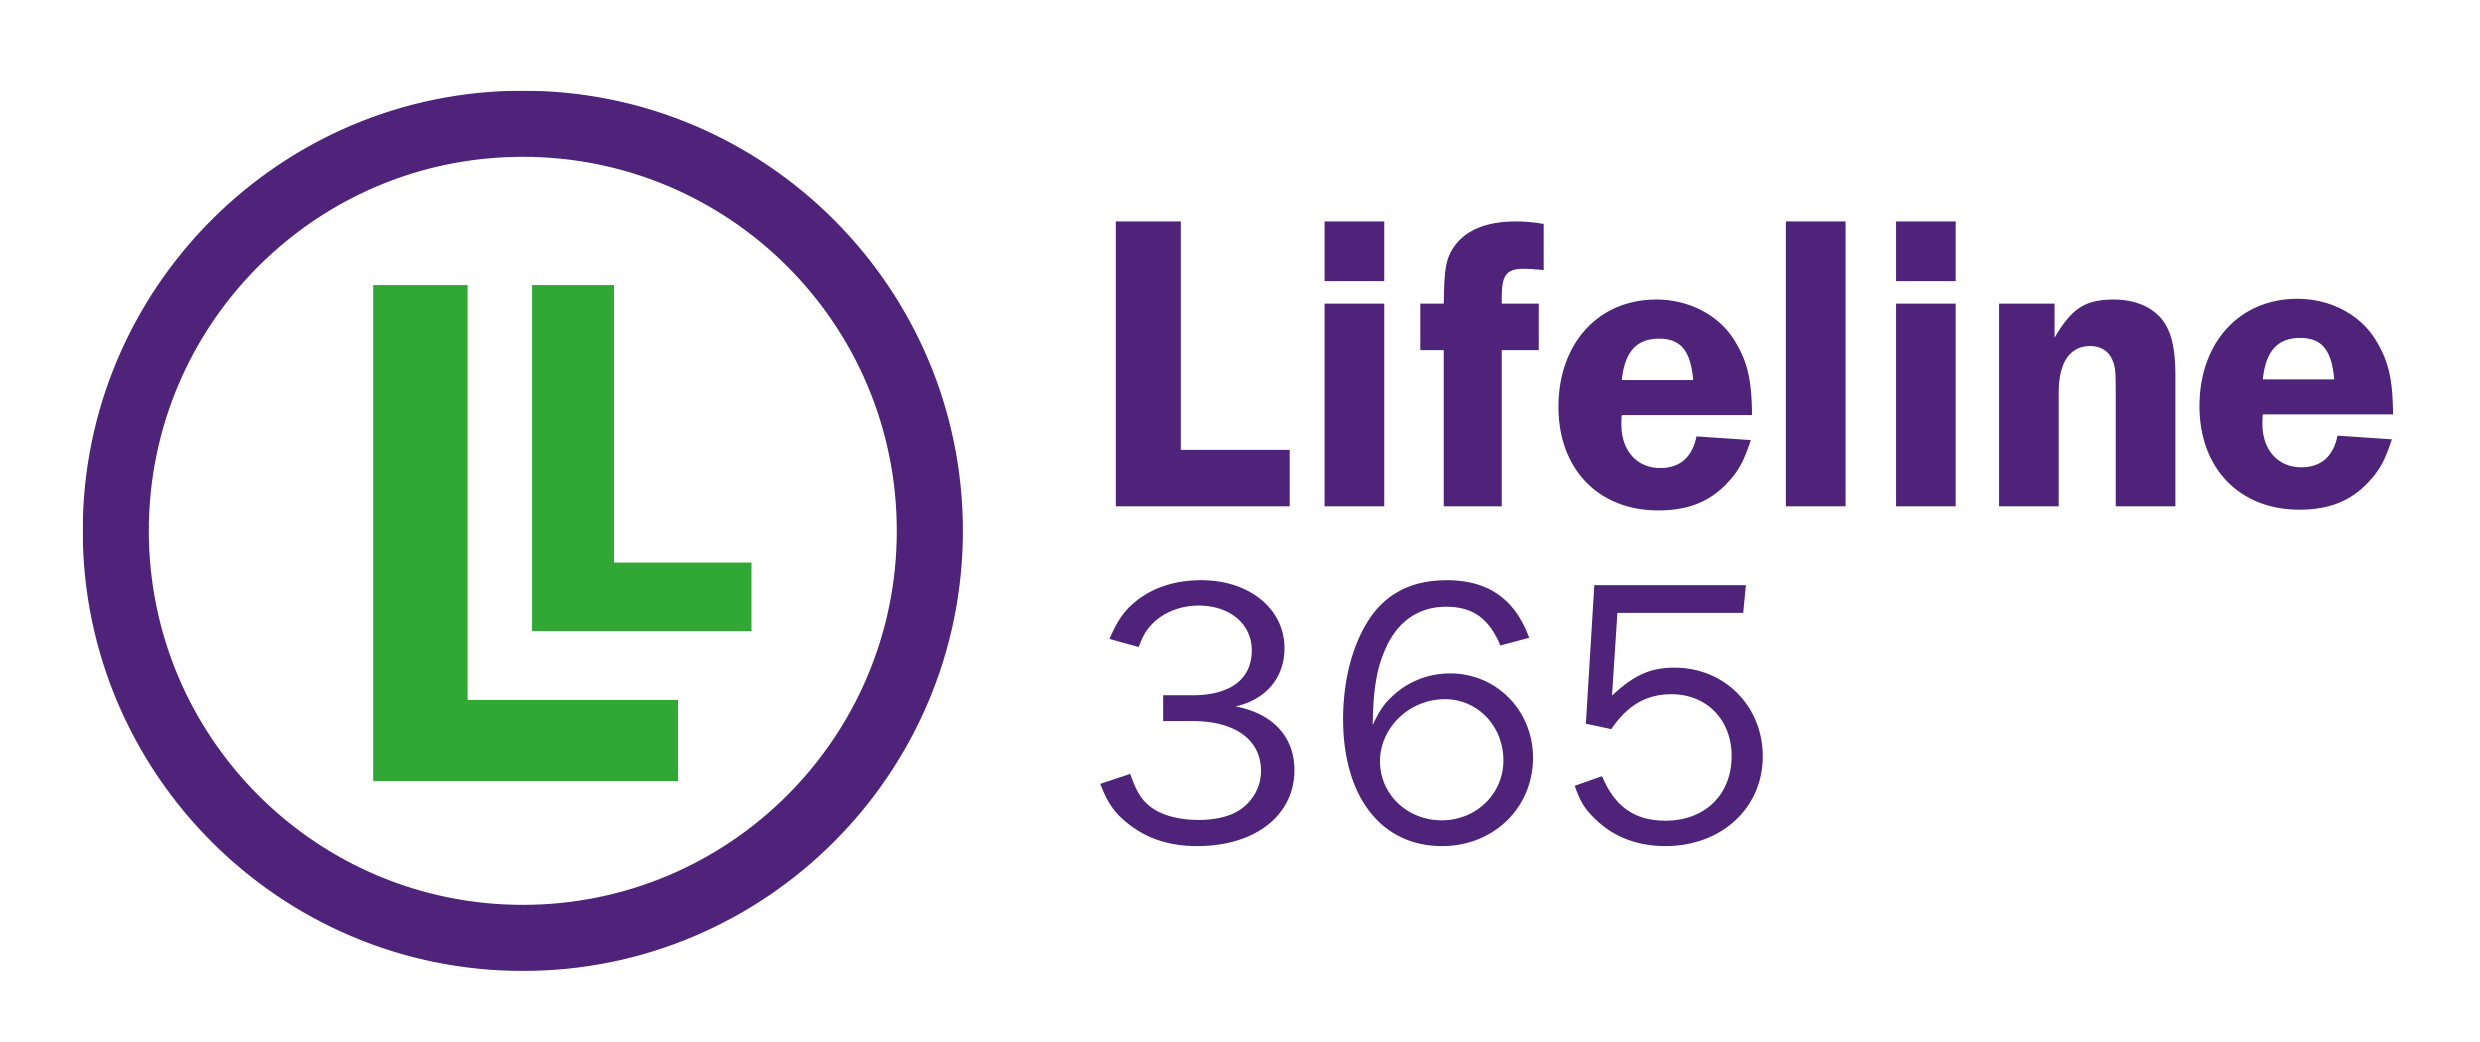 Image of Lifeline 365